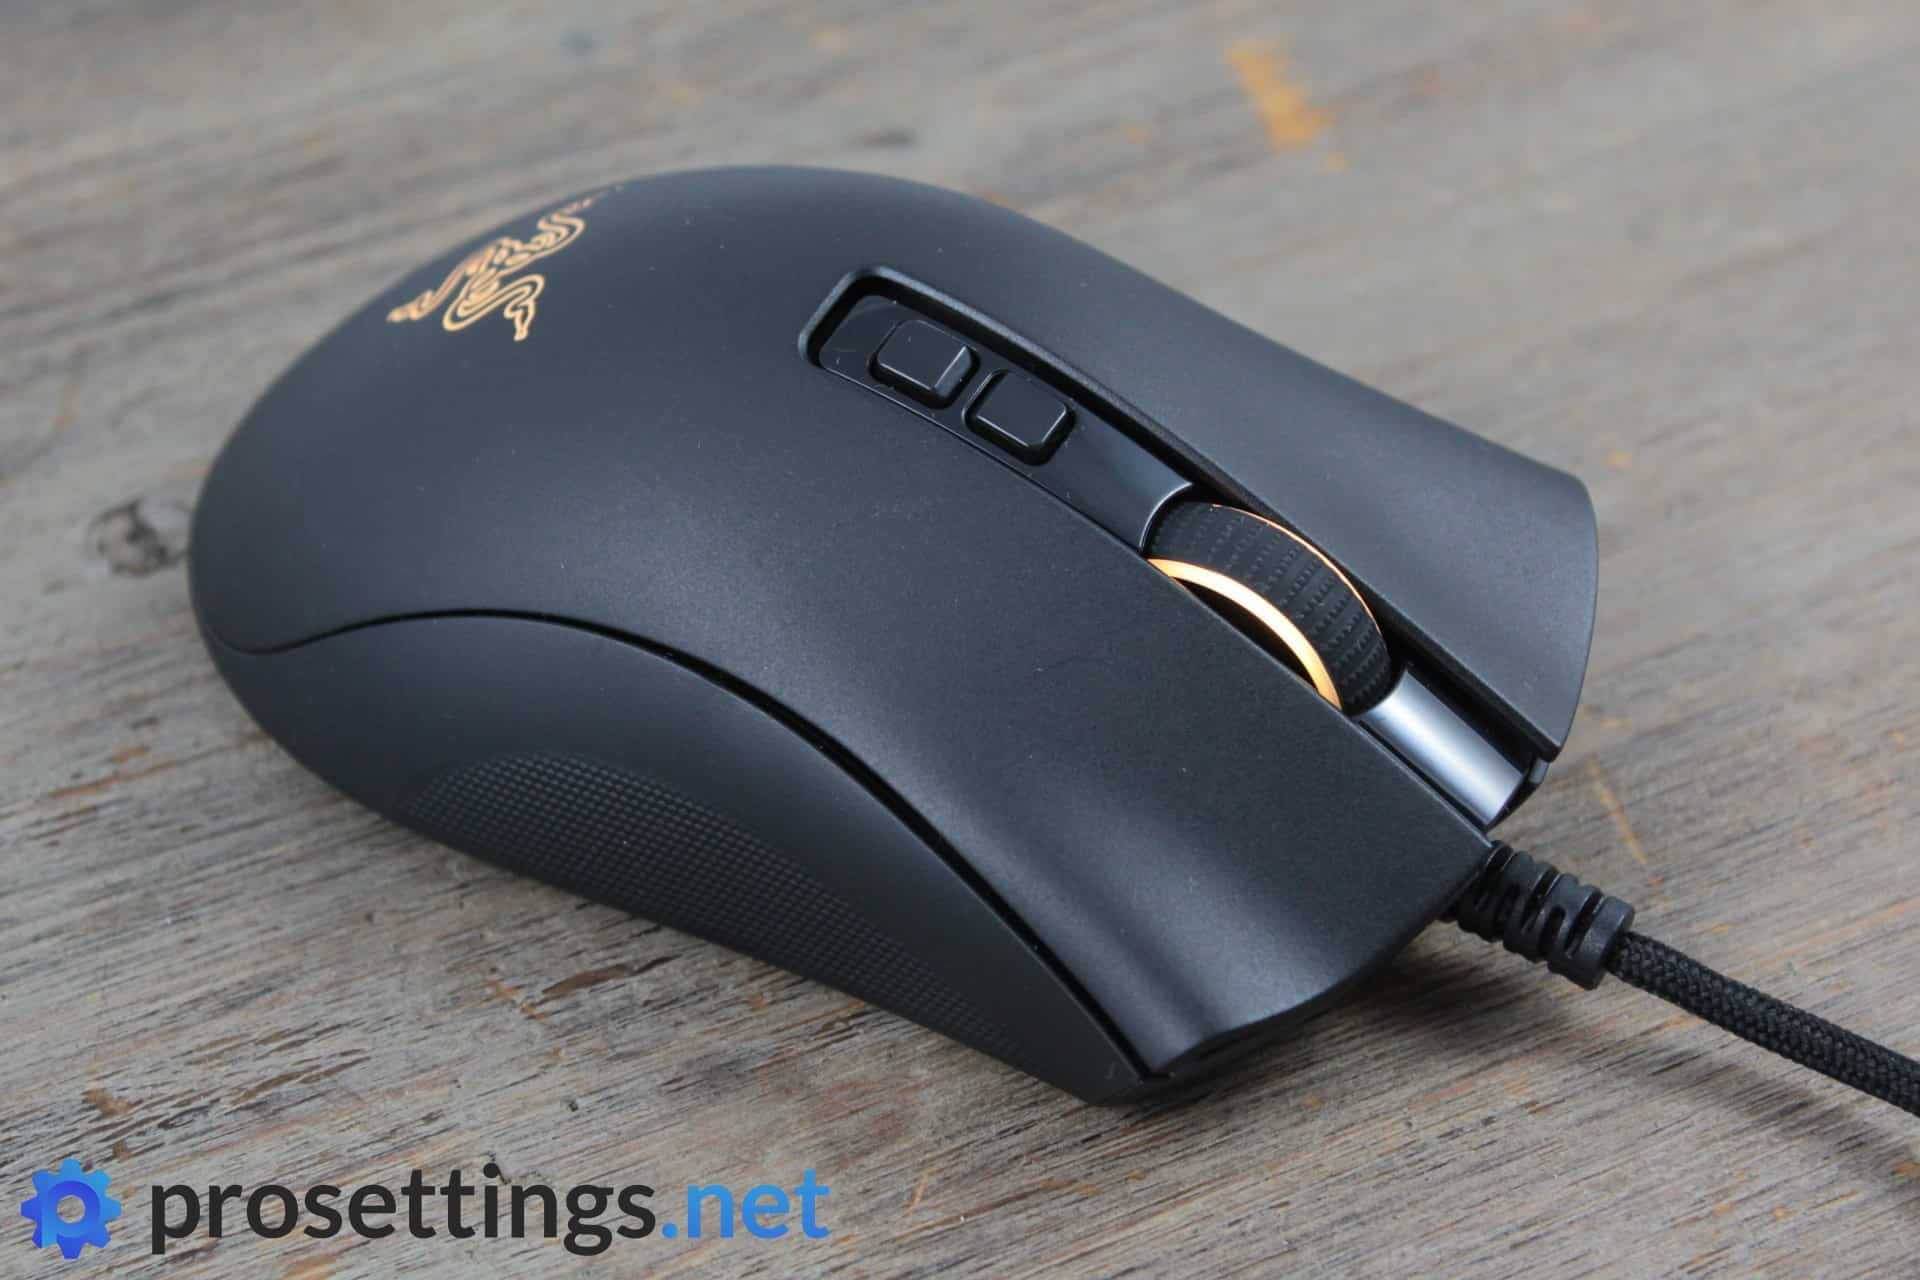 Razer DeathAdder V2 Mouse Review